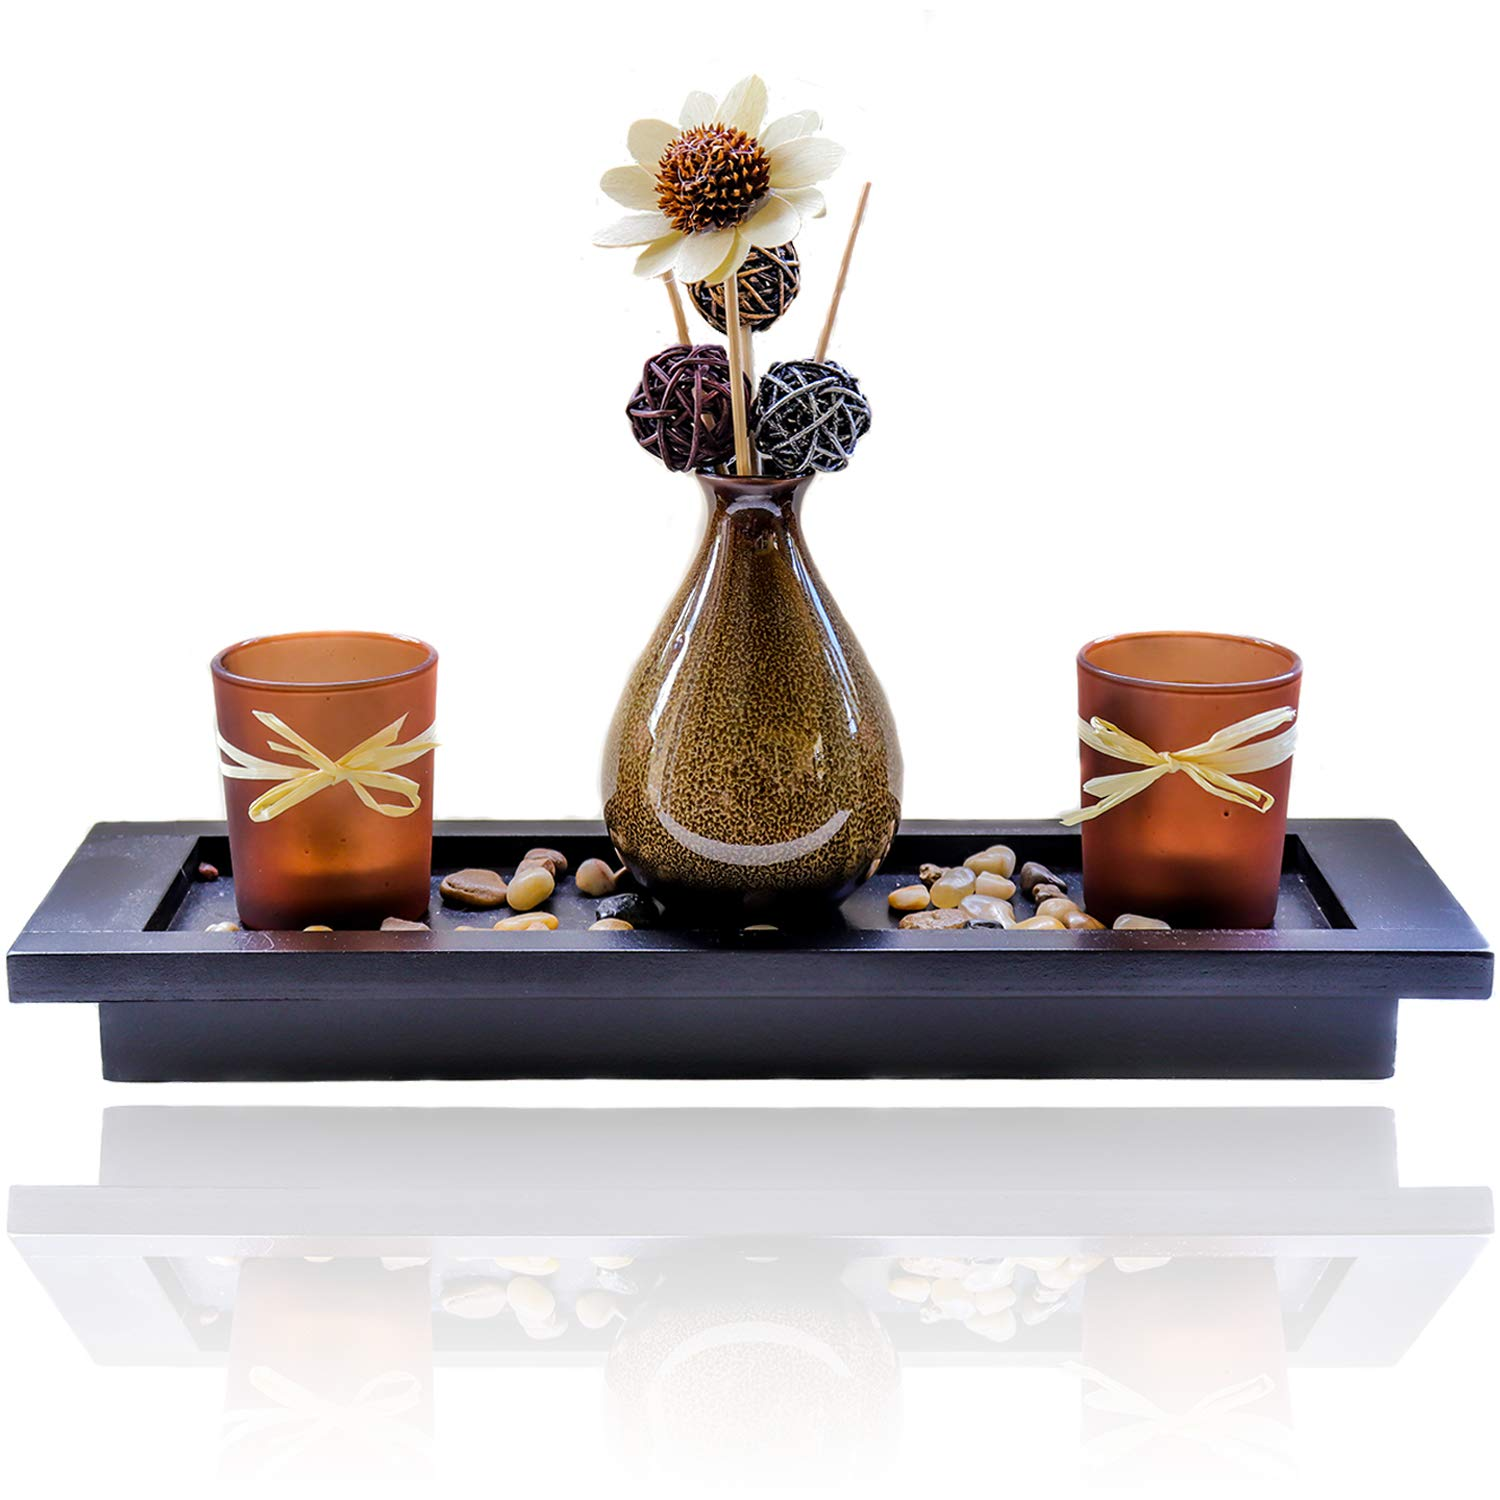 Simply Lily - Large Candlescape Centerpiece & Tea Light Candle Holder Set for Coffee Tables, Dining Rooms & Bathrooms   Gorgeous Modern Rustic Home Decor with Polished Stones and Decorative Vase